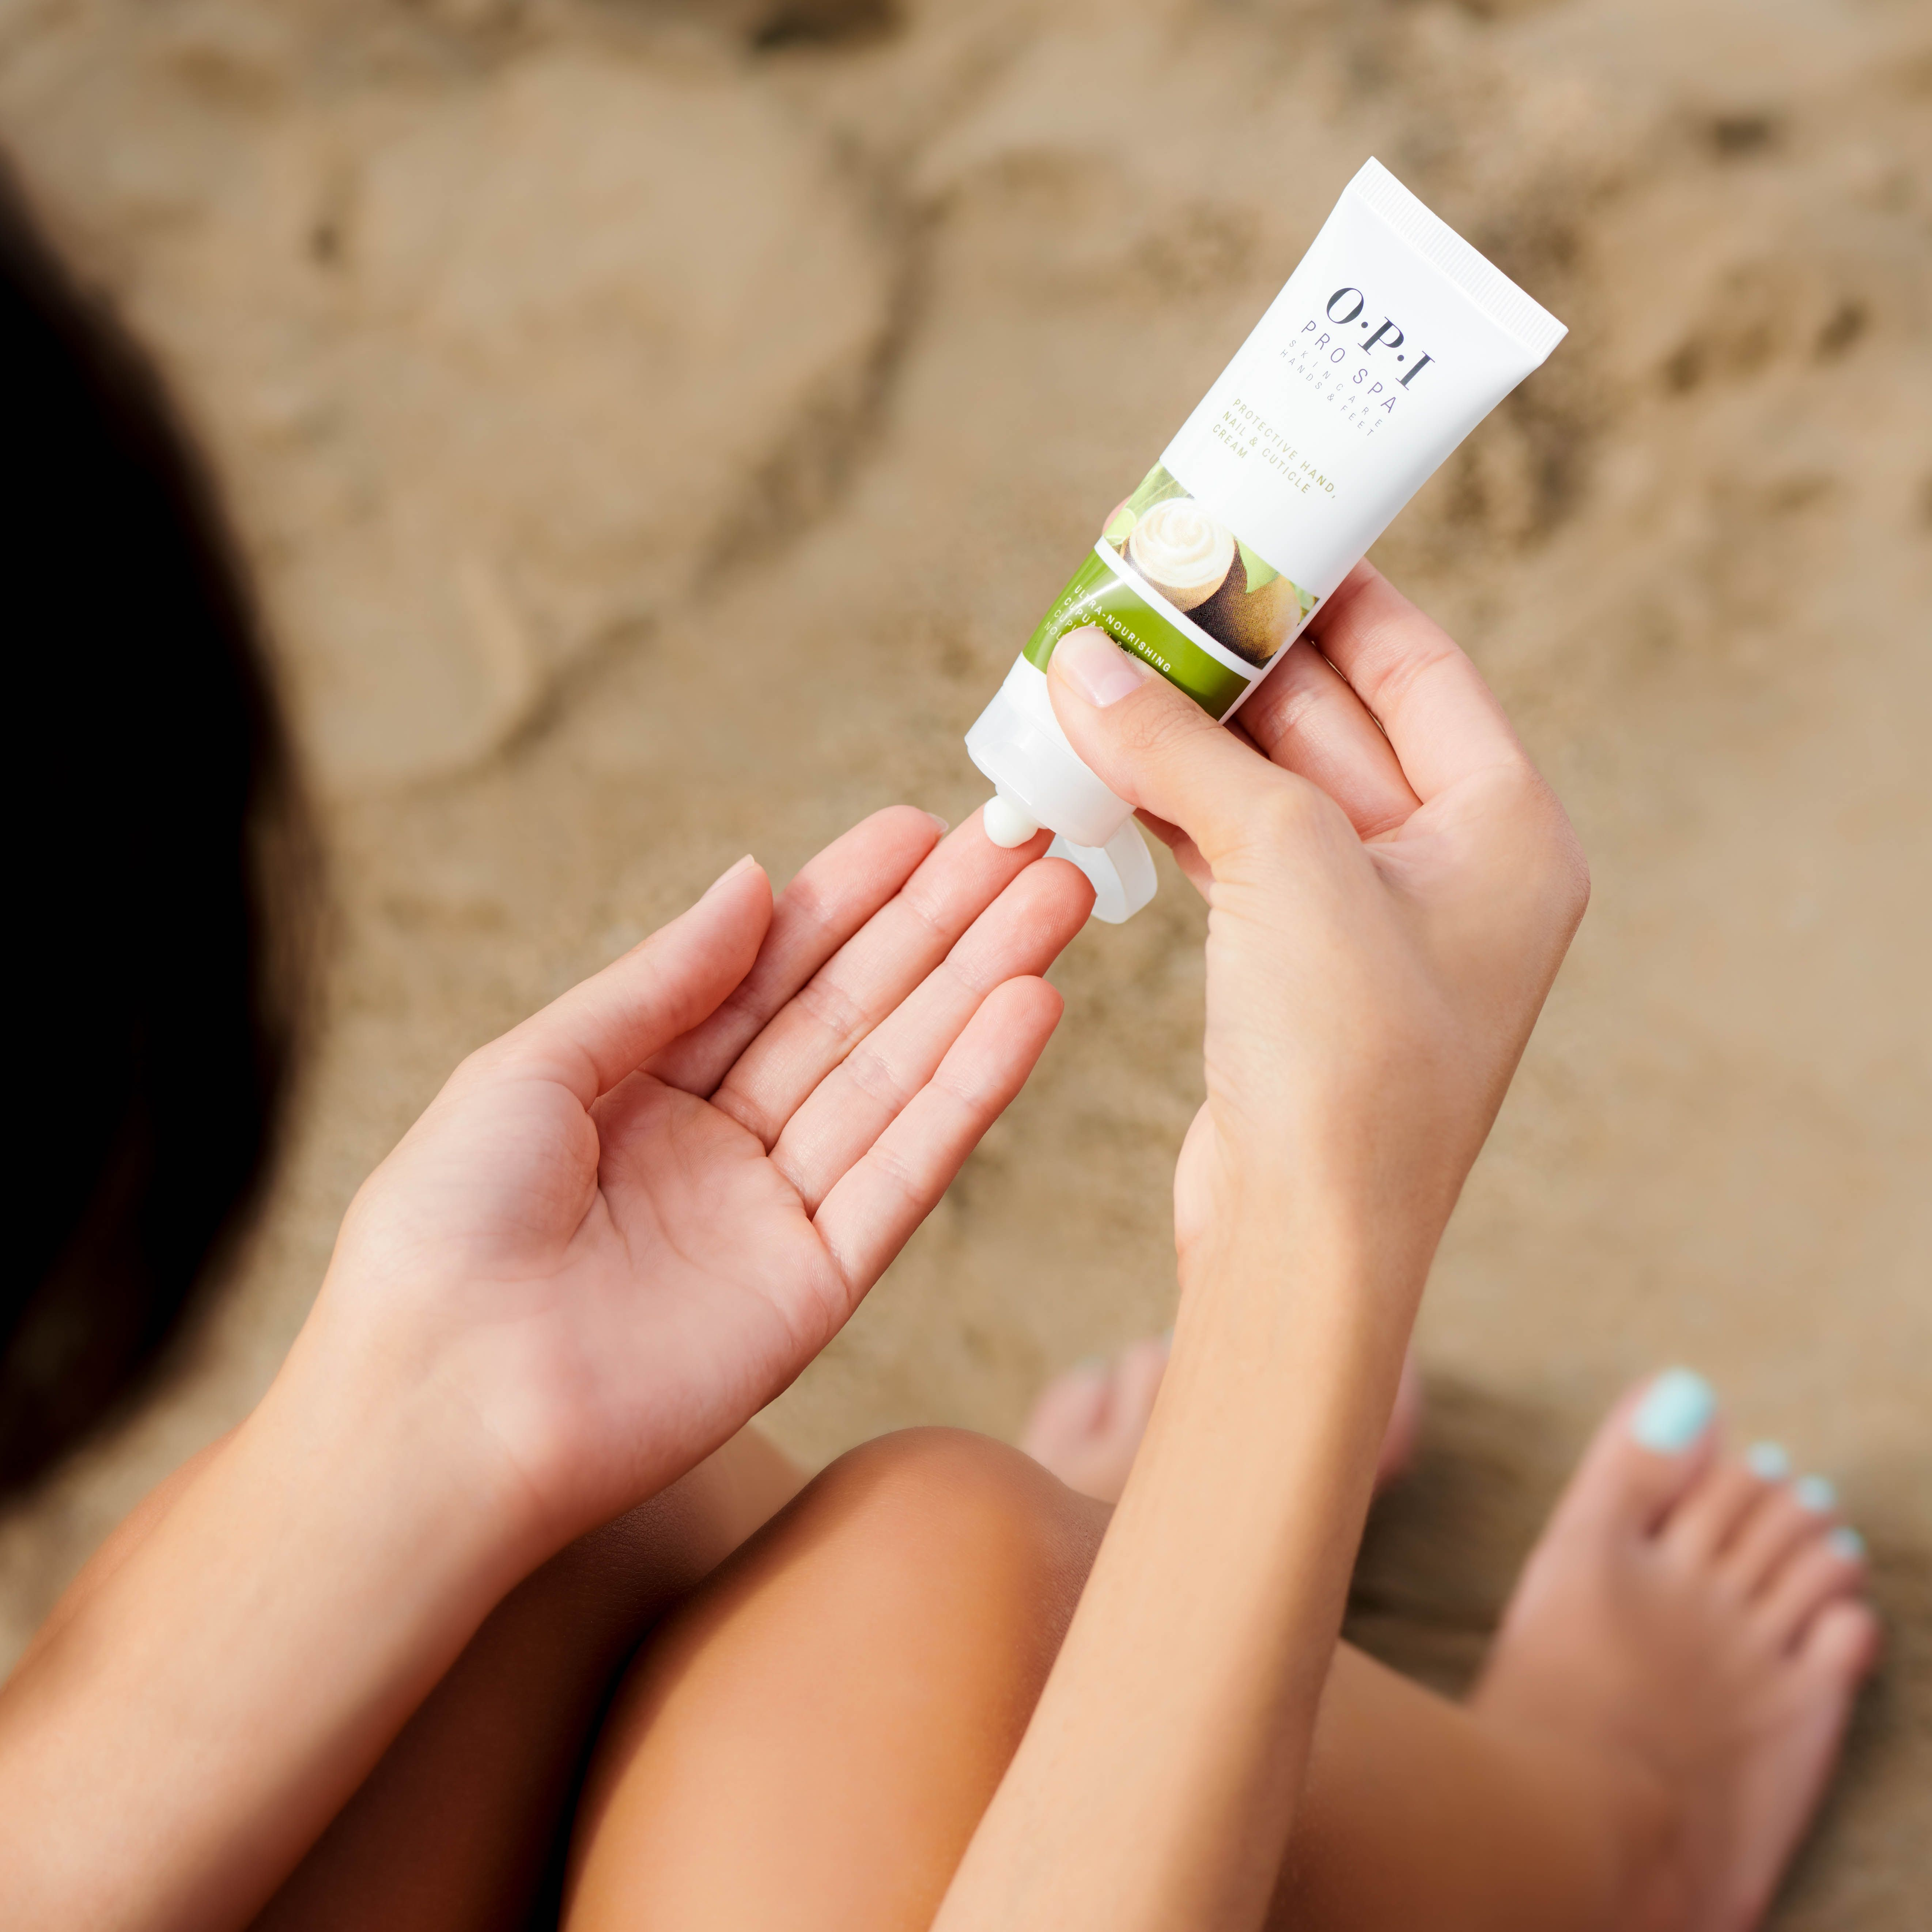 Protect Your Skin From The Sand And Sun With Opi Pro Spa Protective Hand Nail Cuticle Cream Shop Here